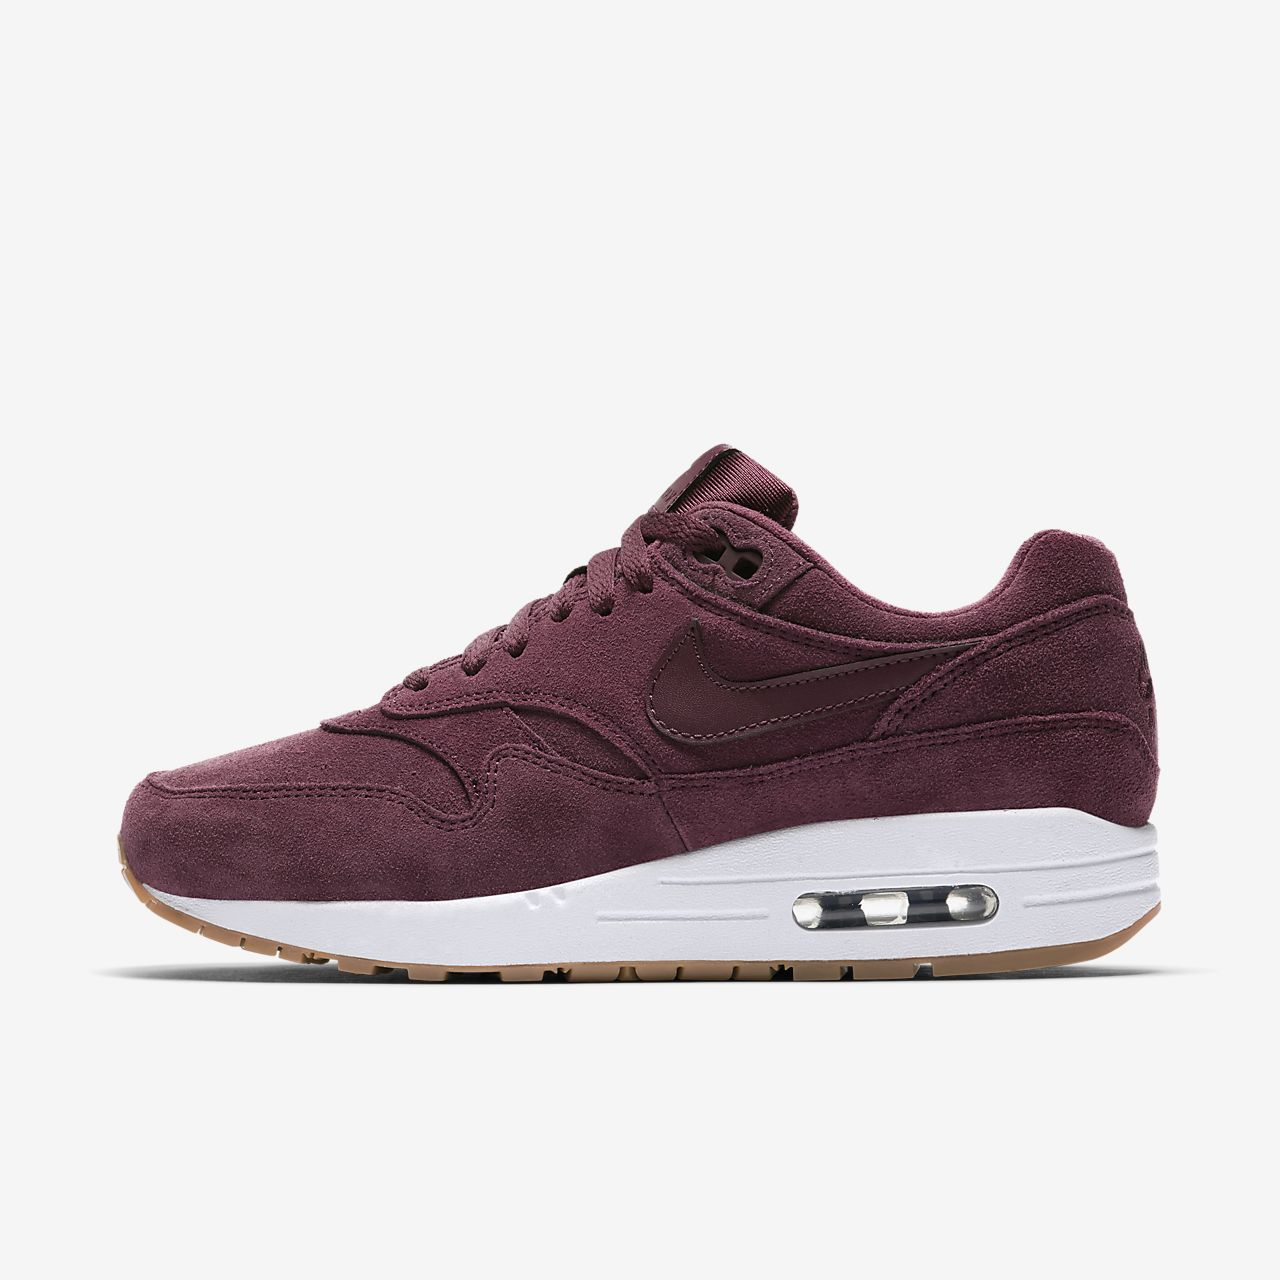 the latest 56af3 e32c5 Chaussure Nike Air Max 1 SE pour Femme